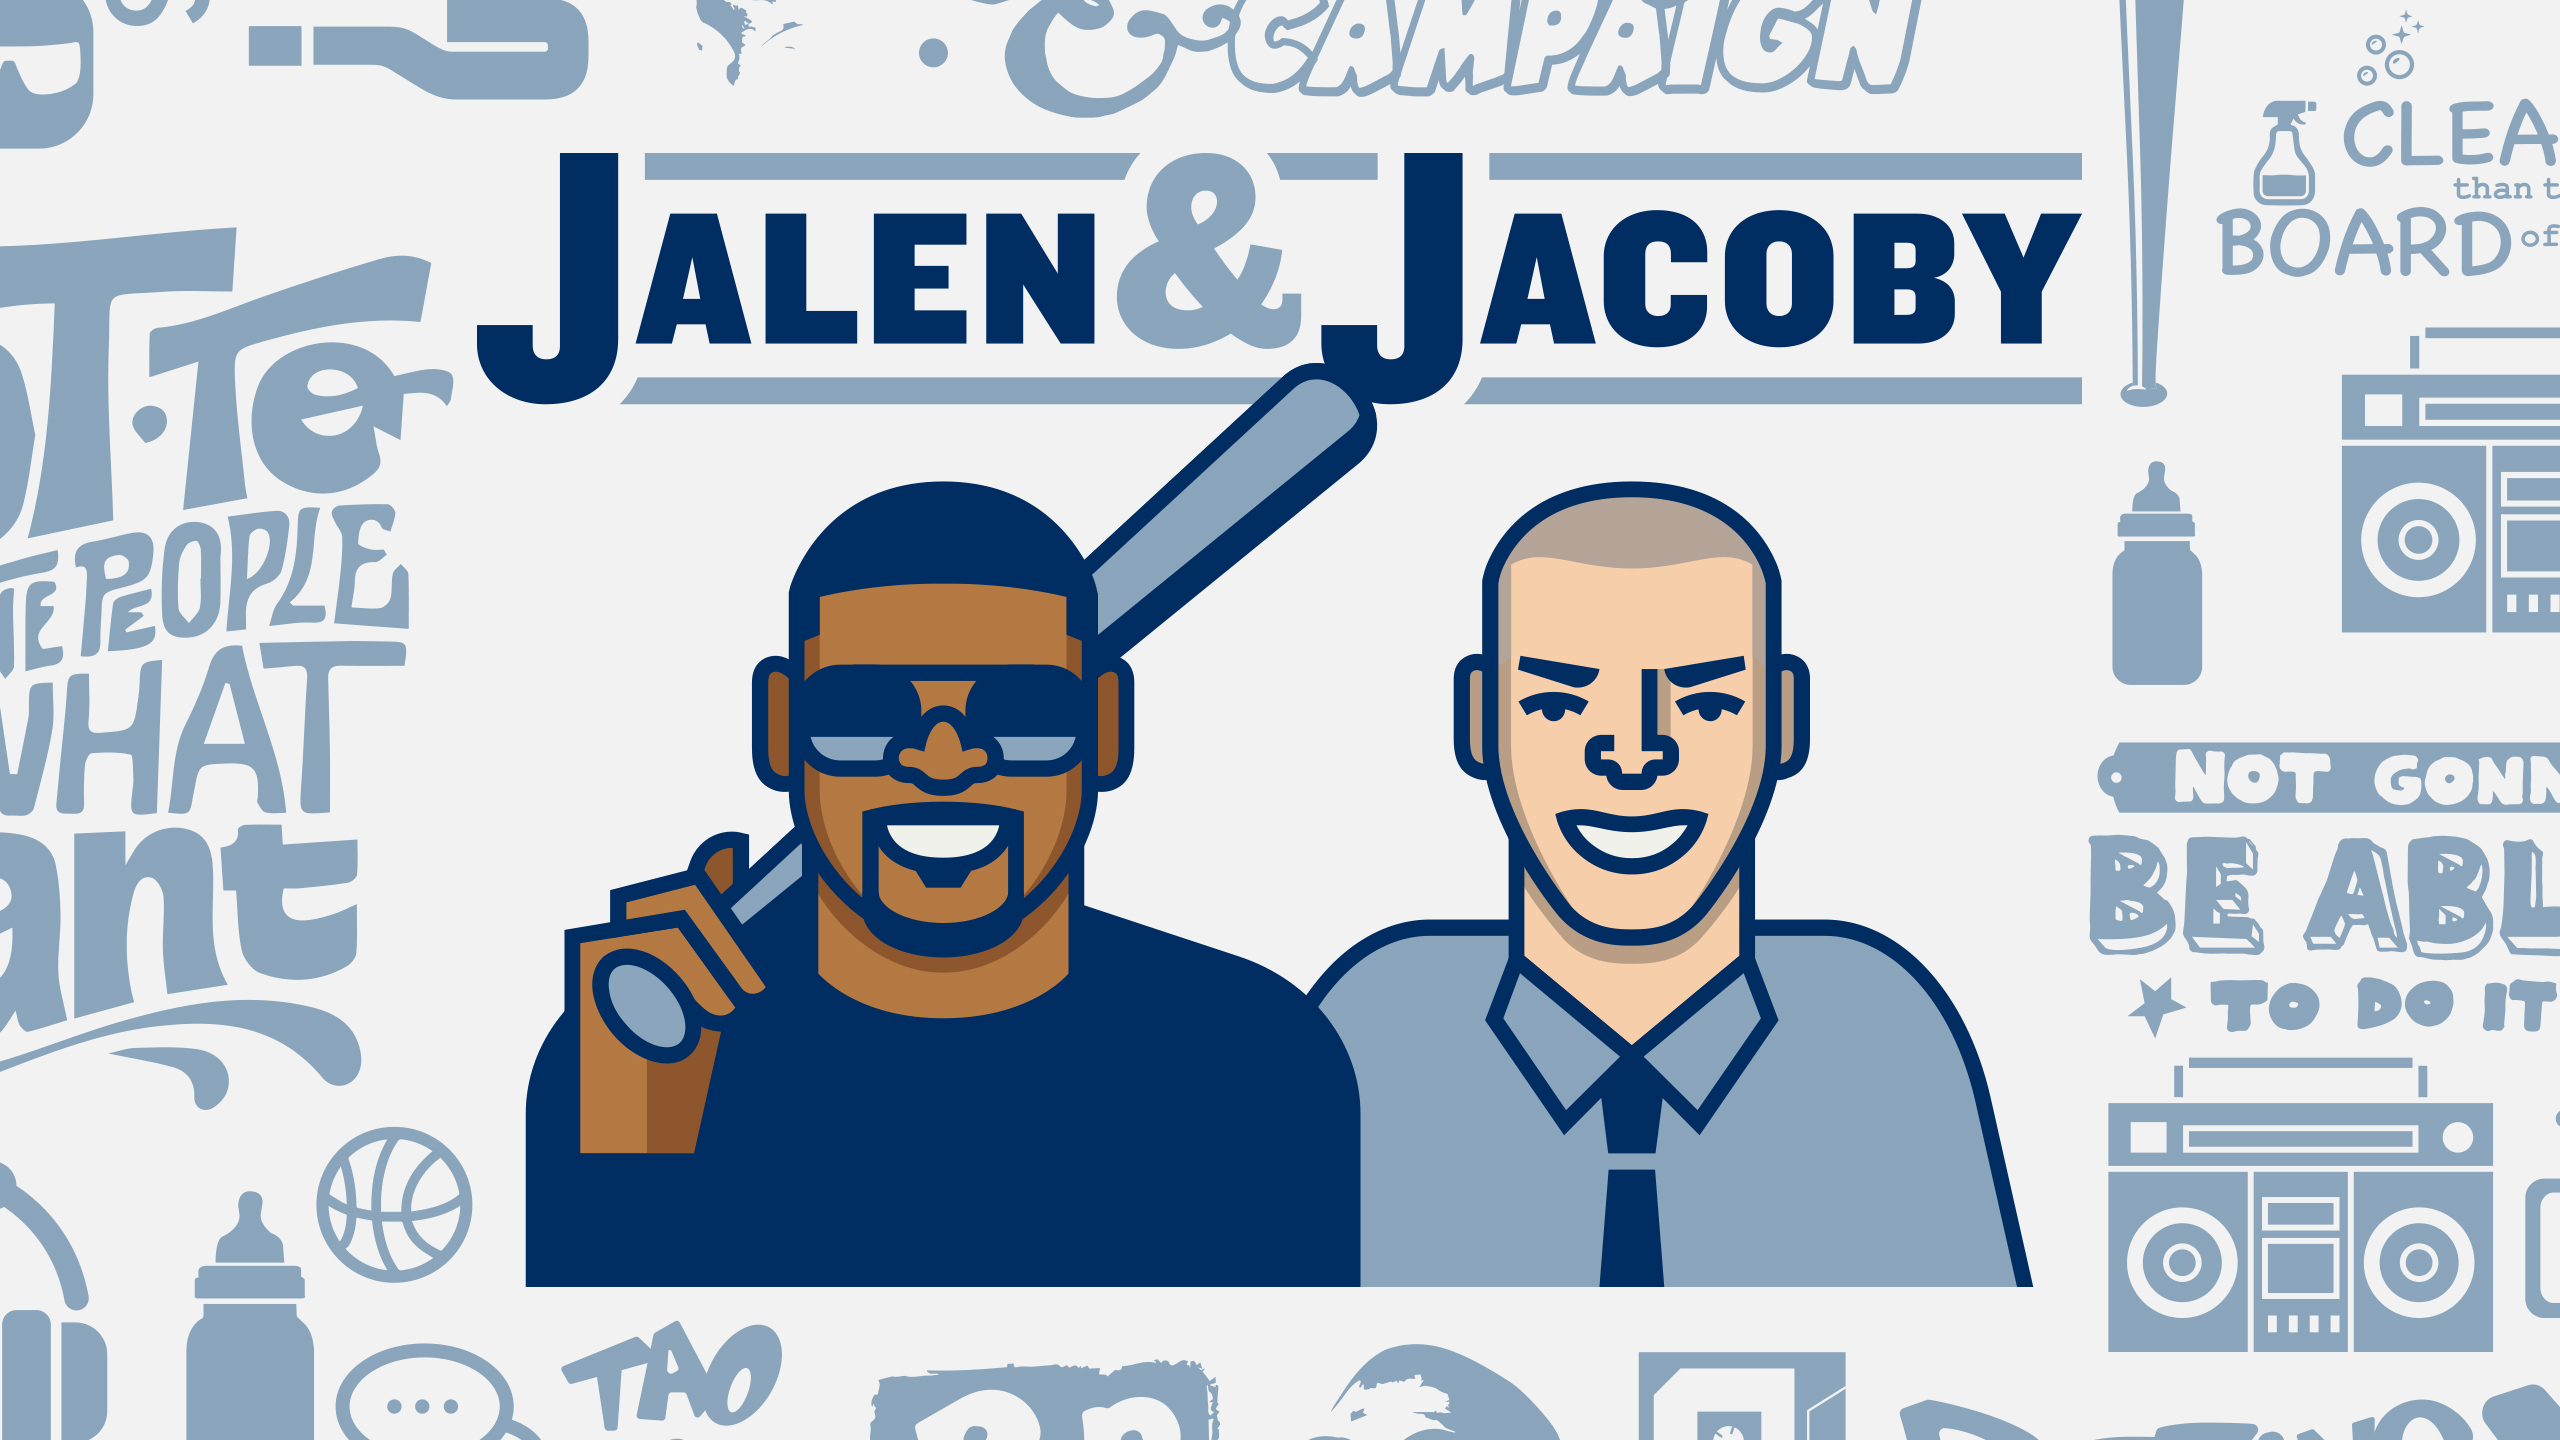 Thu, 9/20 - Jalen & Jacoby